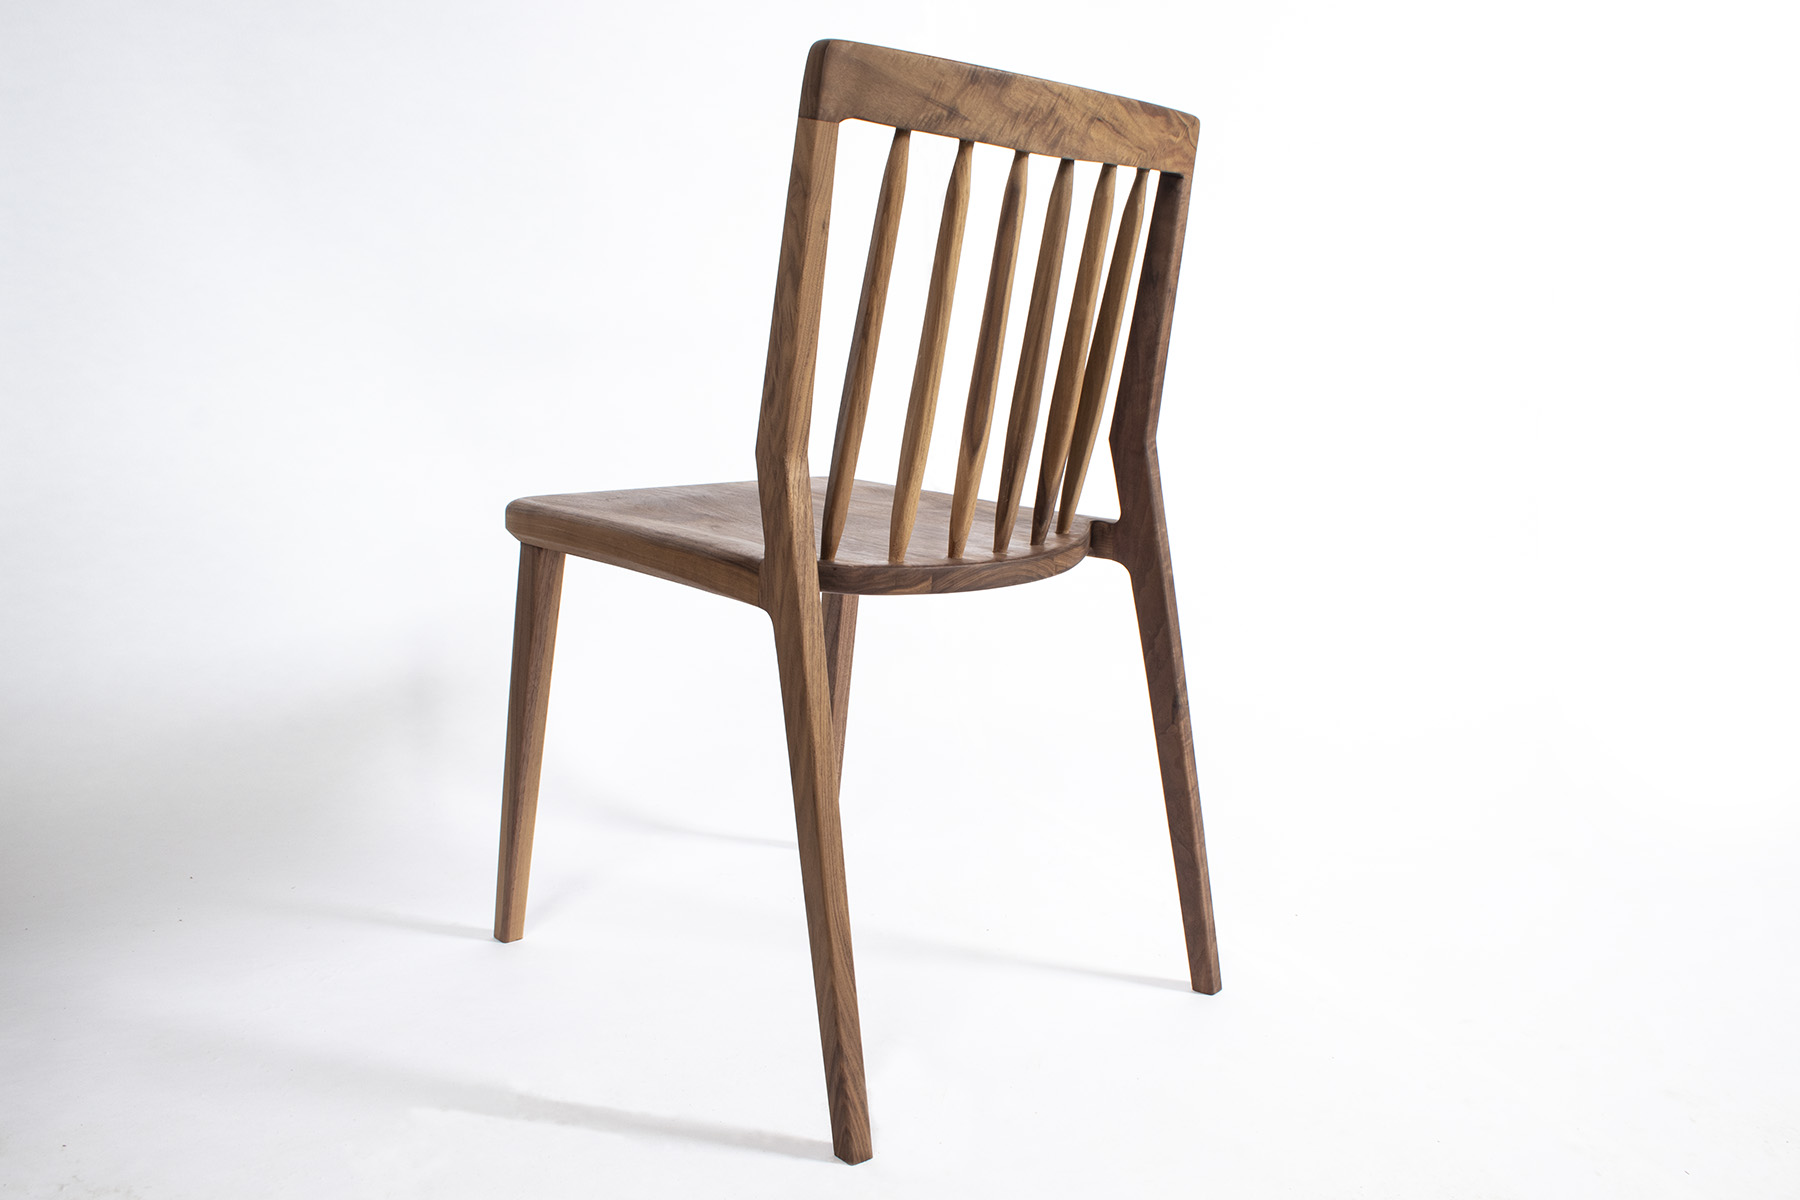 furniture maker bristol, built in furniture bristol, chair maker, arbor furniture, walnut chair